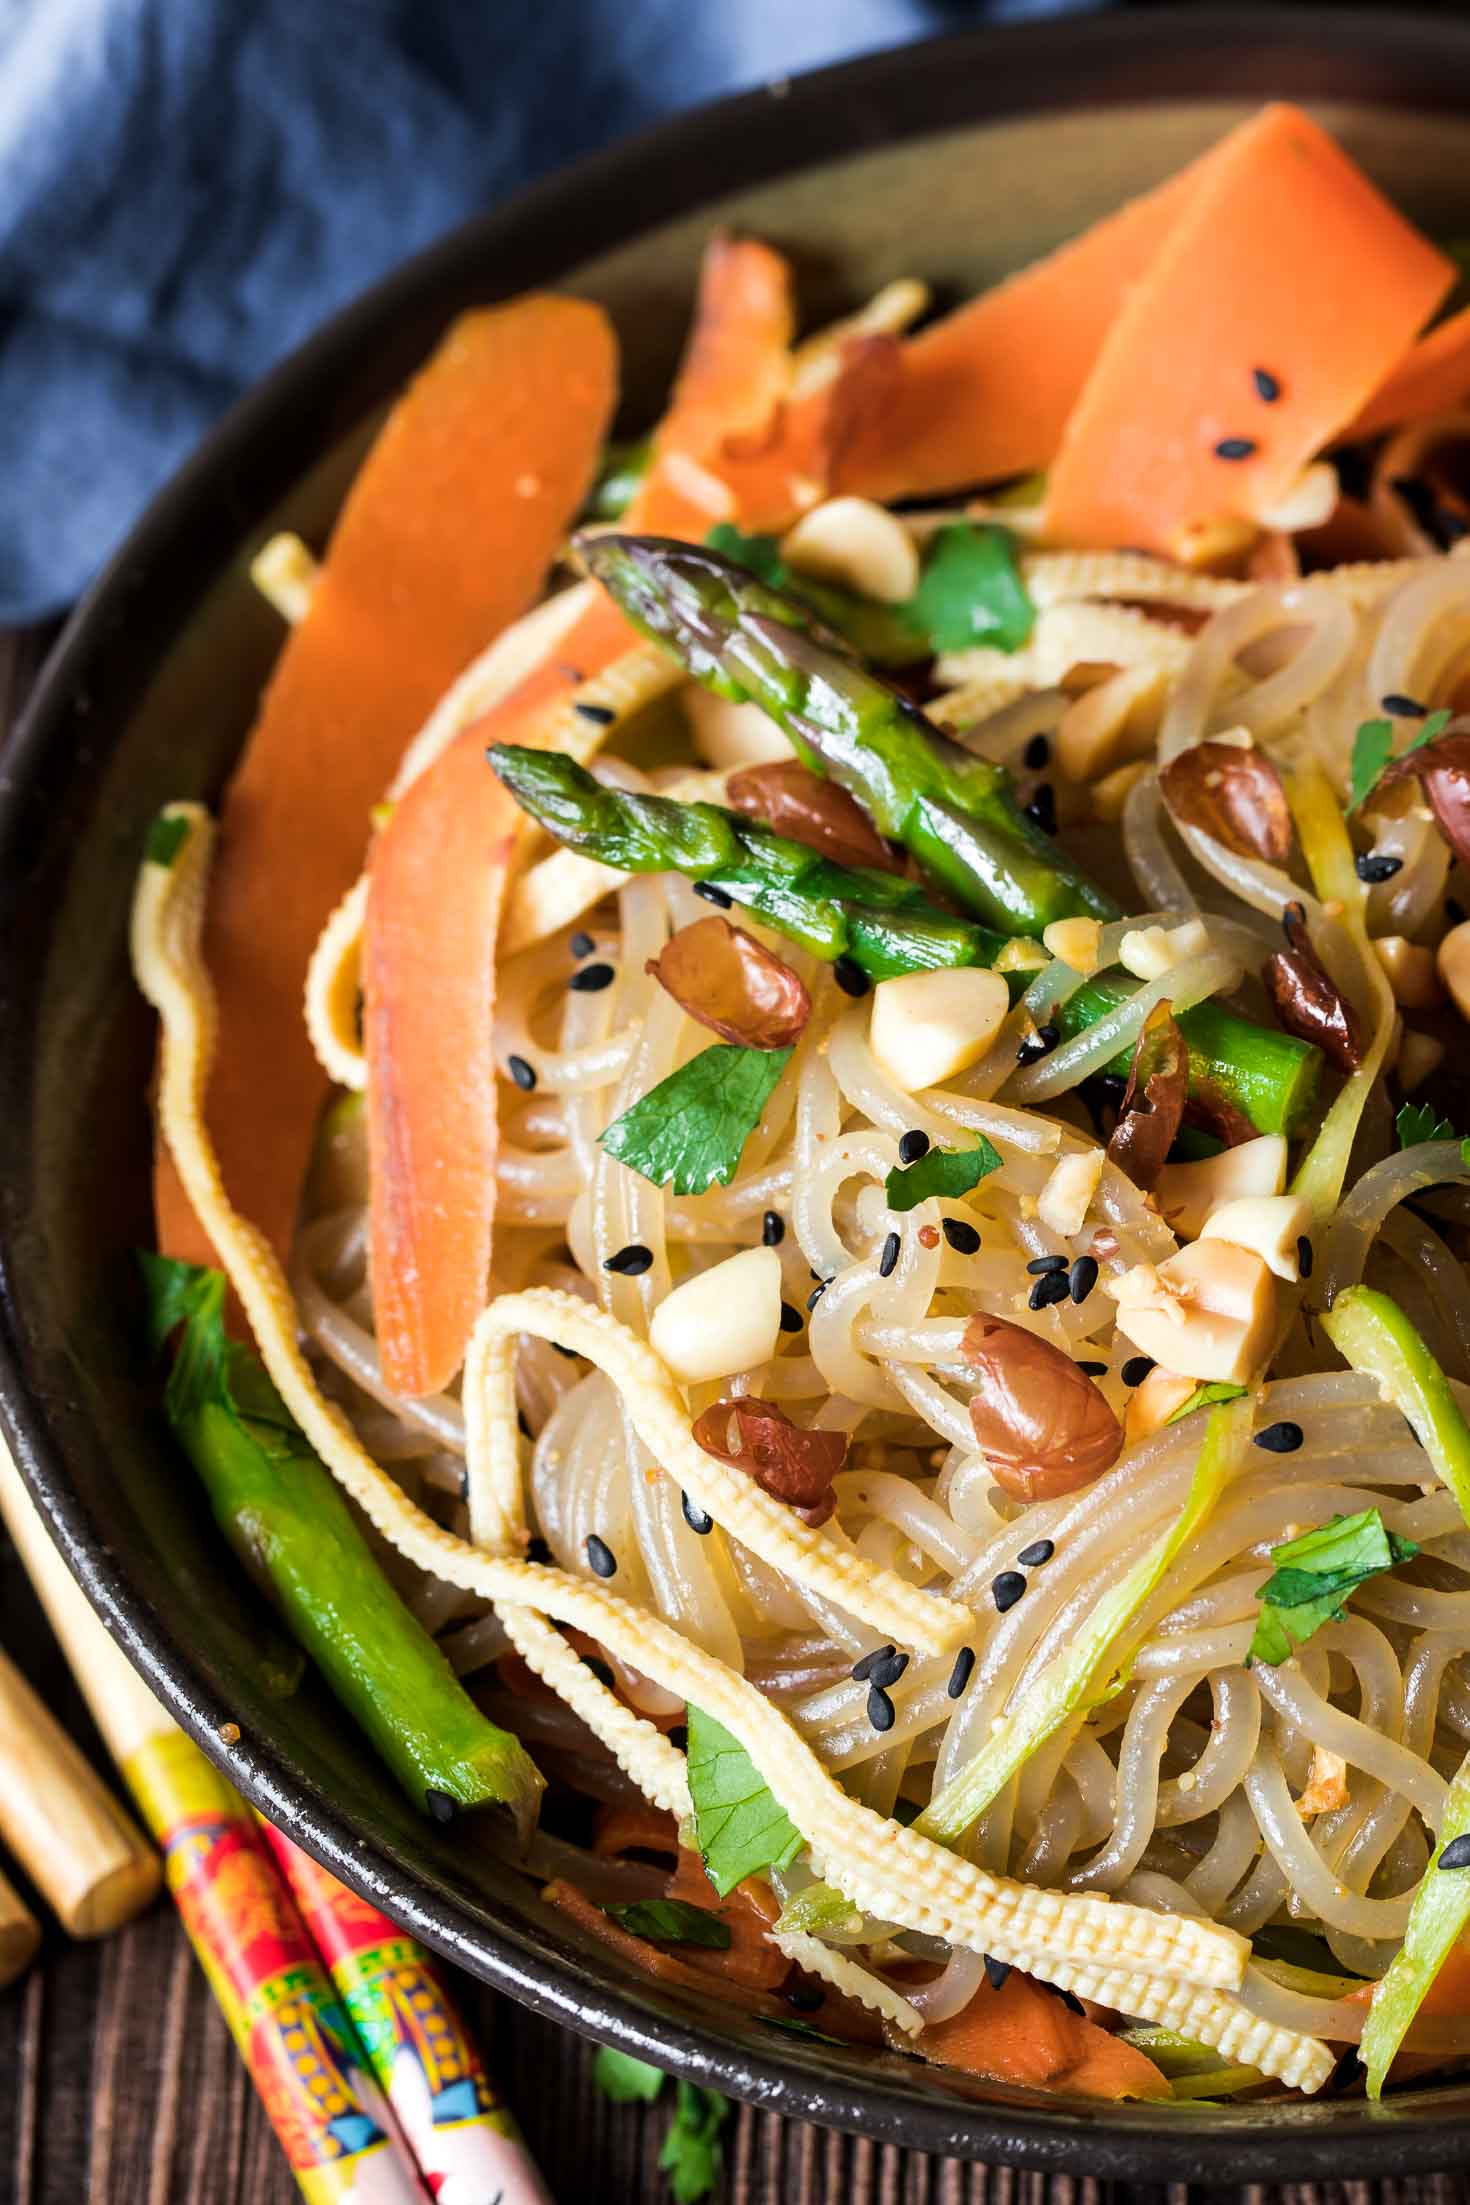 Vegan Korean Glass Noodle Stir-Fry with Tofu Slices (JapChae)-top view-a bowl of noodles garnished with roasted peanuts and fresh cilantro on a board